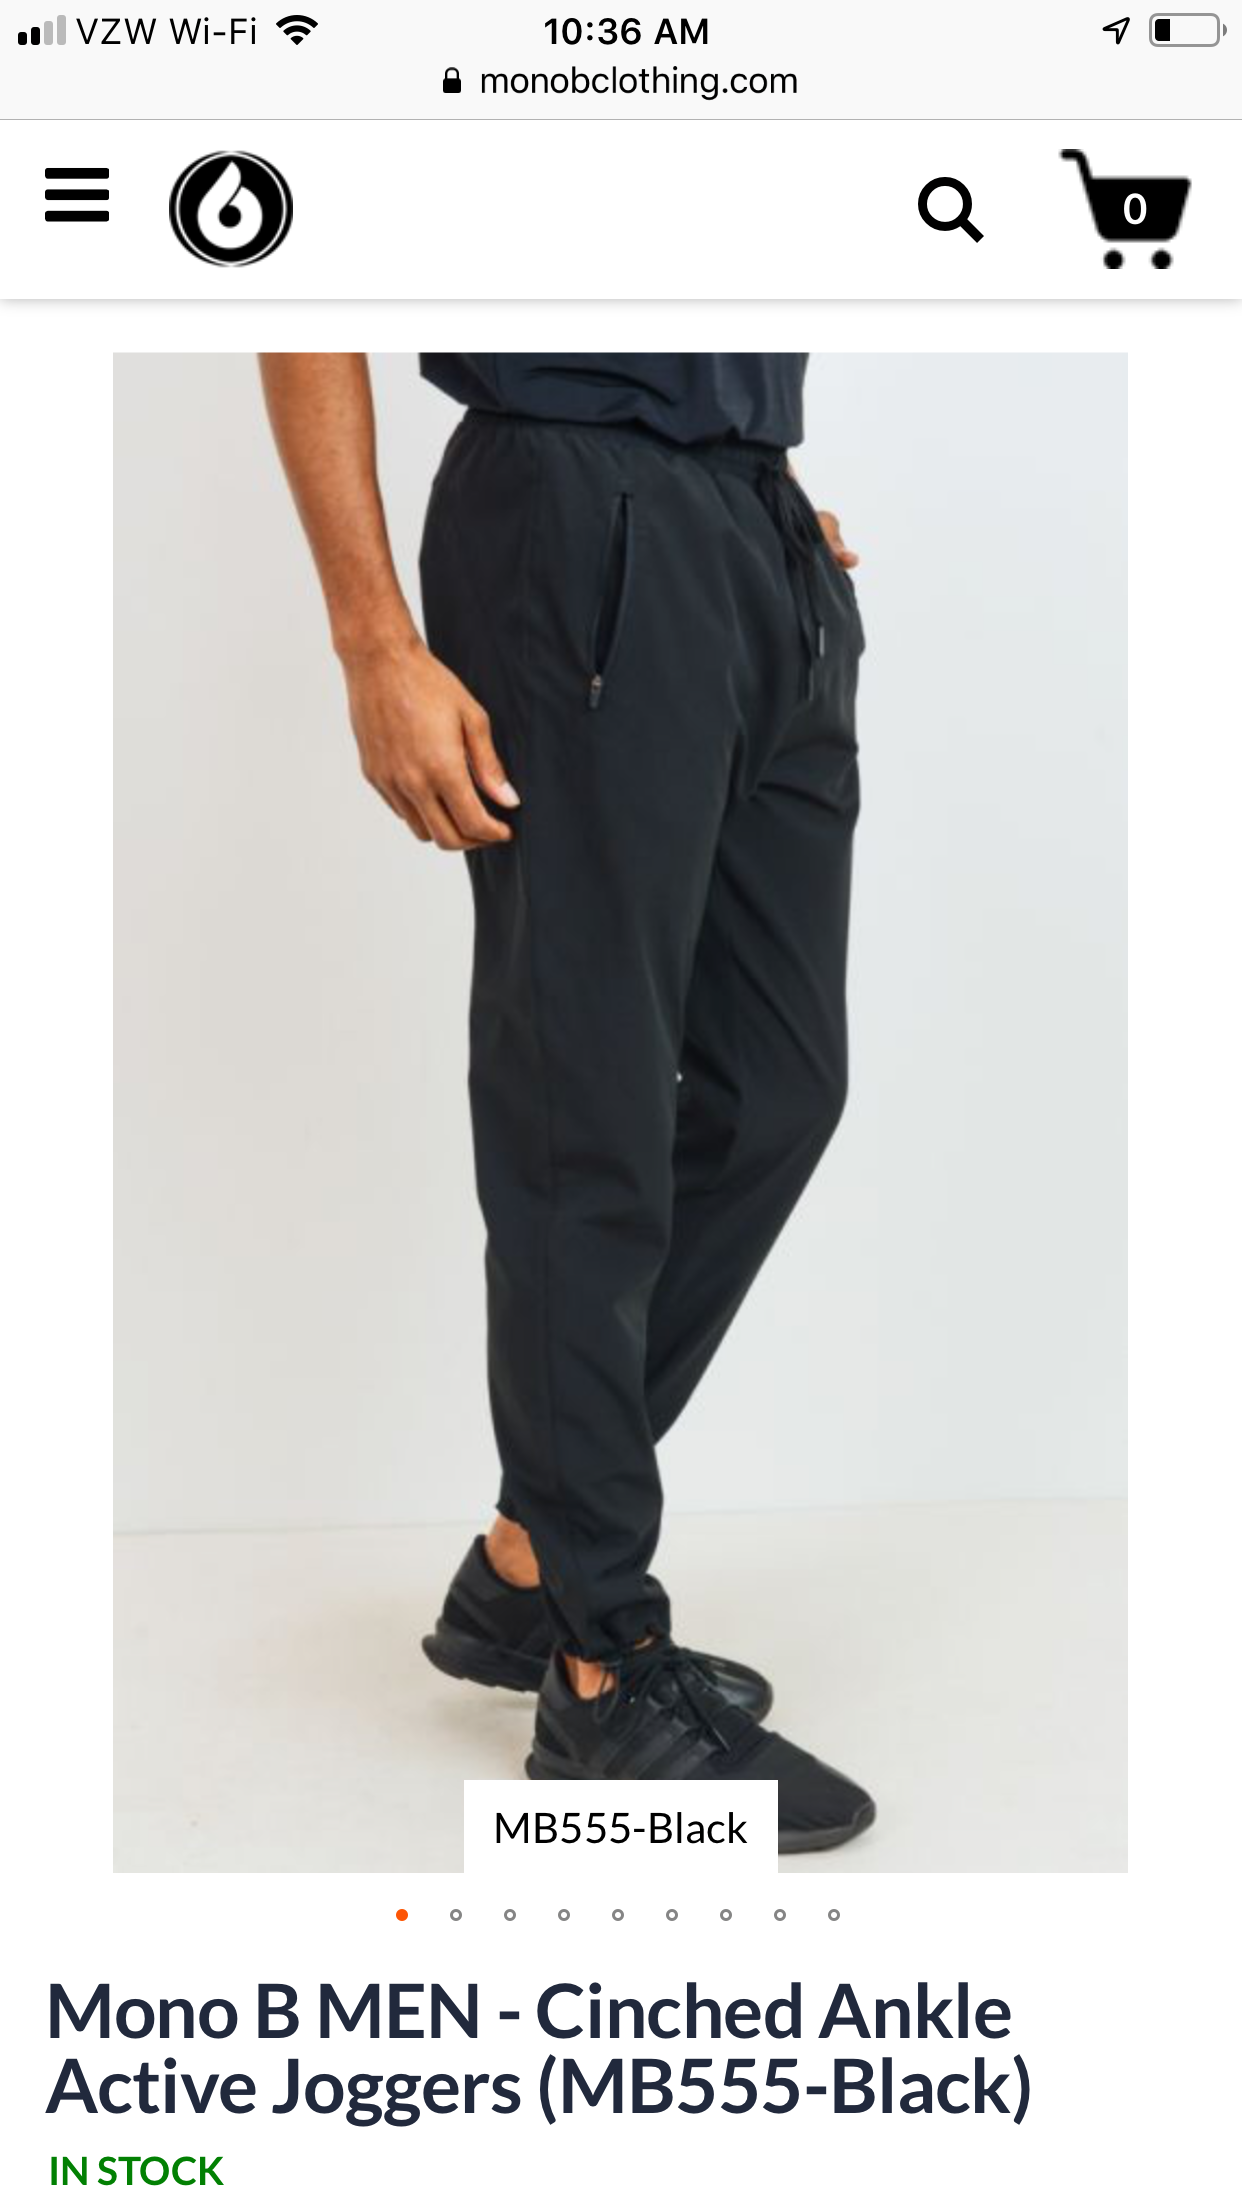 Men's Cinched Ankle Active Joggers (MB555-Black